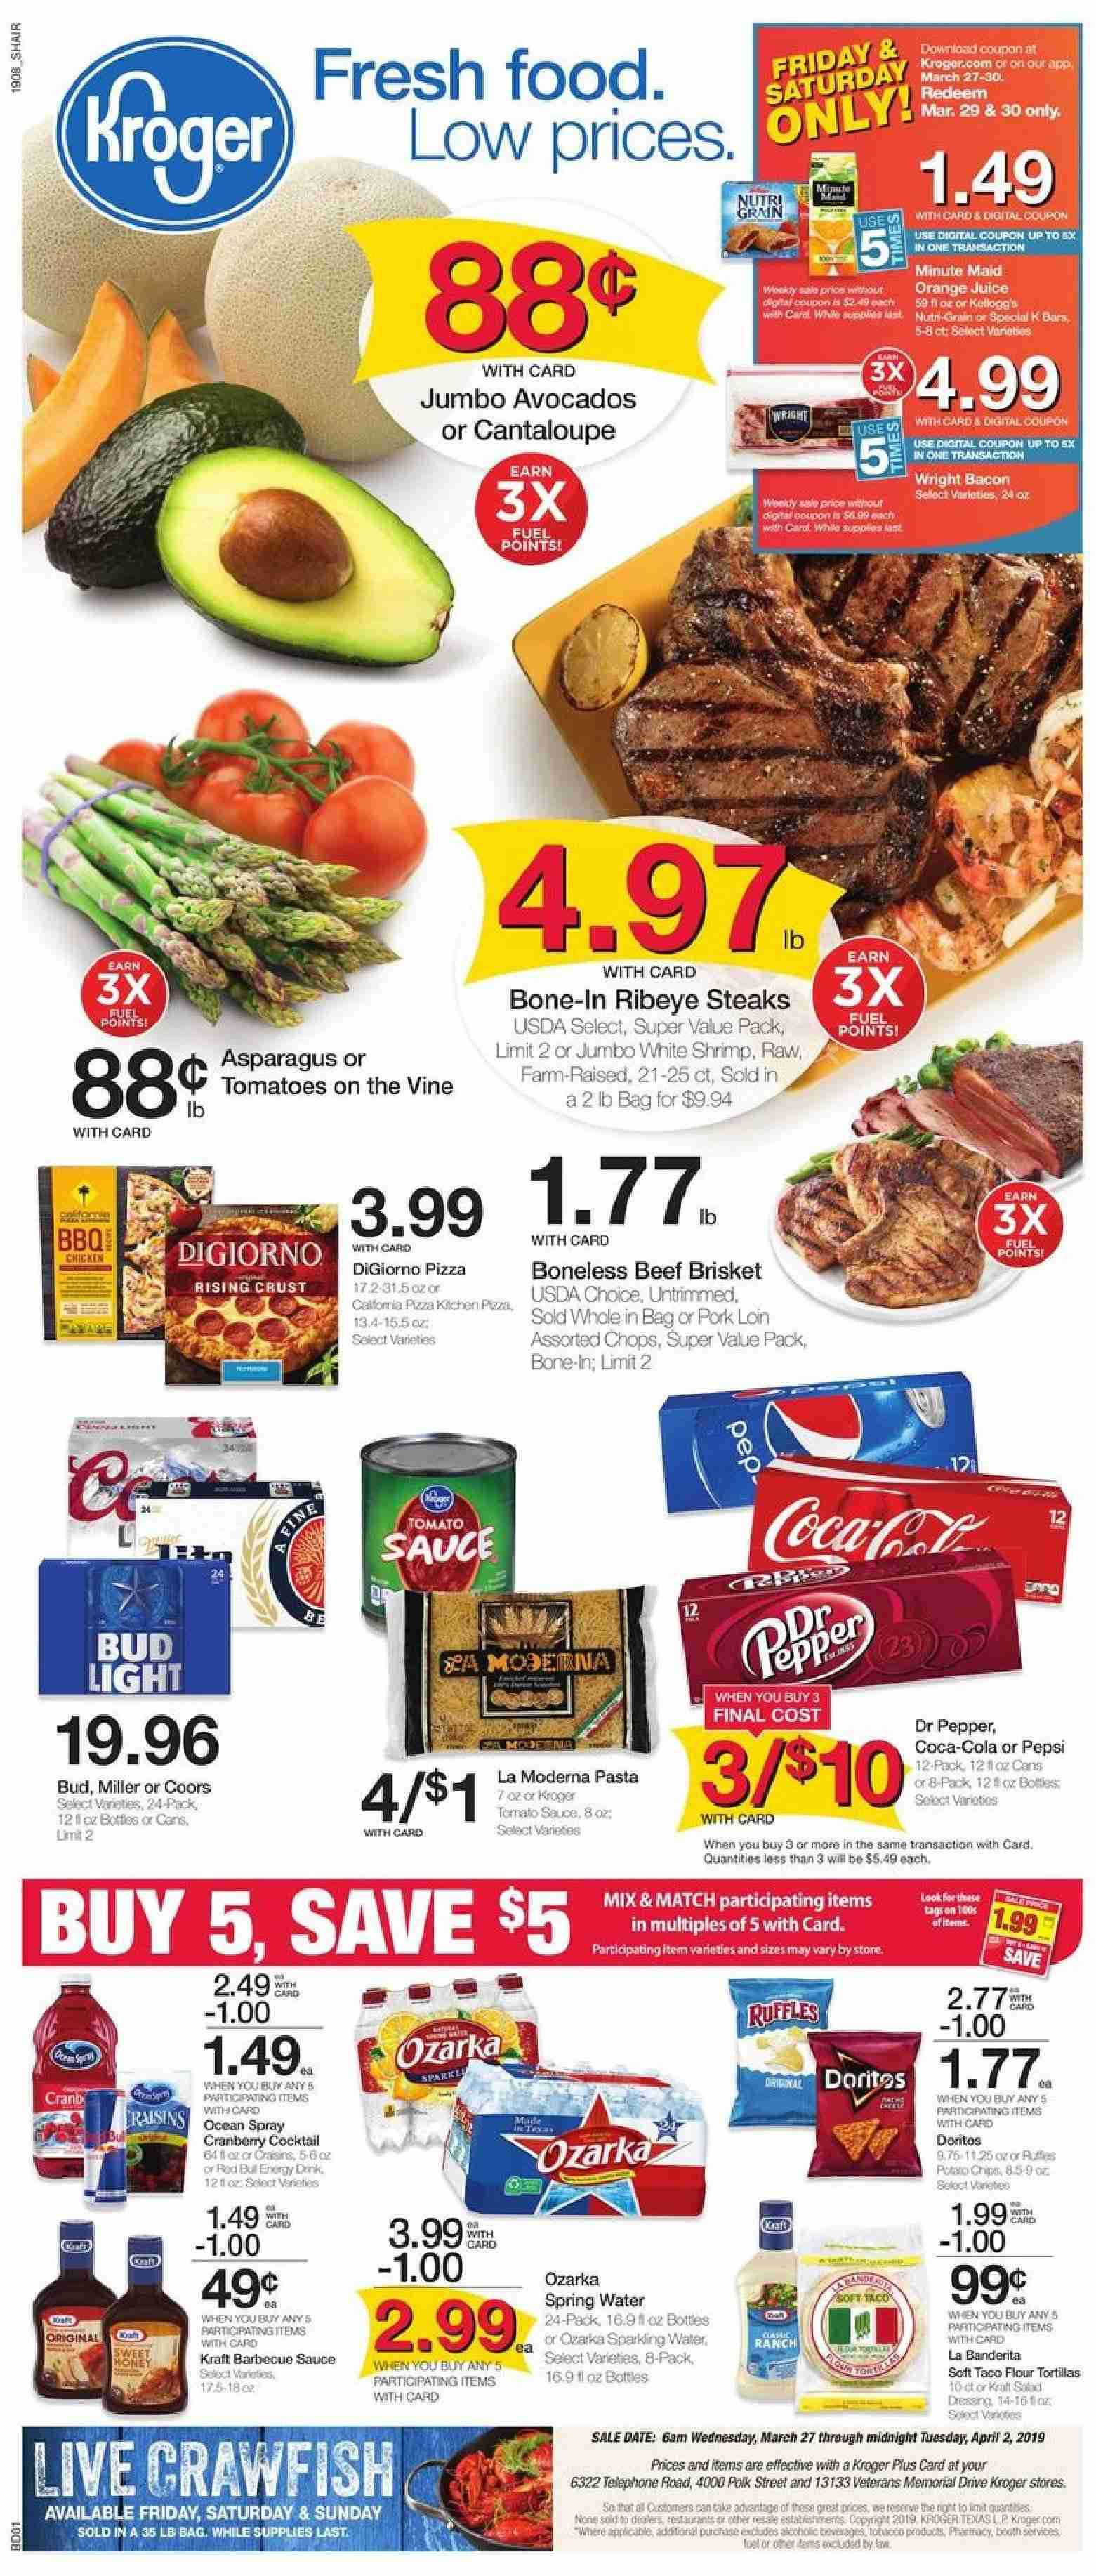 Kroger Flyer - 03.27.2019 - 04.02.2019 - Sales products - asparagus, avocado, barbecue sauce, beef meat, cantaloupe, coca-cola, crawfish, doritos, flour, gin, shrimp, spring water, tomatoes, tortillas, hat, polk, pork loin, pork meat, pepsi, orange juice, juice, dressing, pasta, rod, bud light, sauce, miller, coors. Page 1.